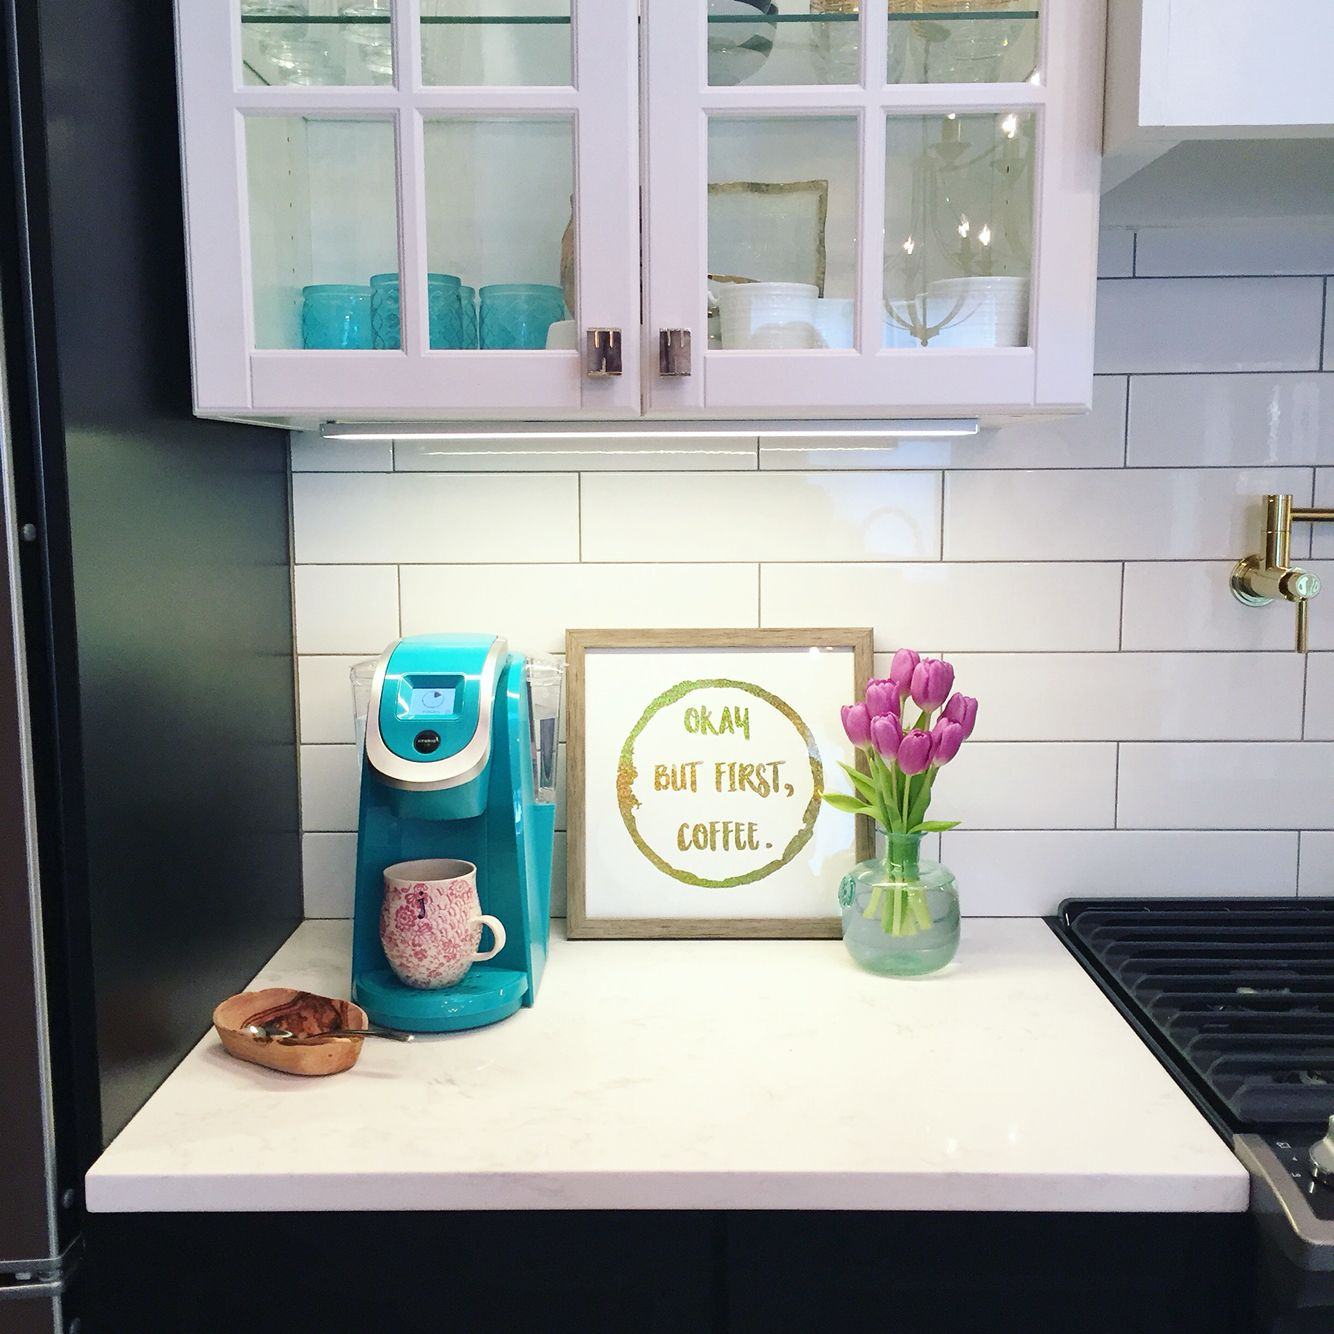 Kitchen coffee station subway tile colorful keurig teal keurig kitchen coffee station subway tile colorful keurig teal keurig dailygadgetfo Images